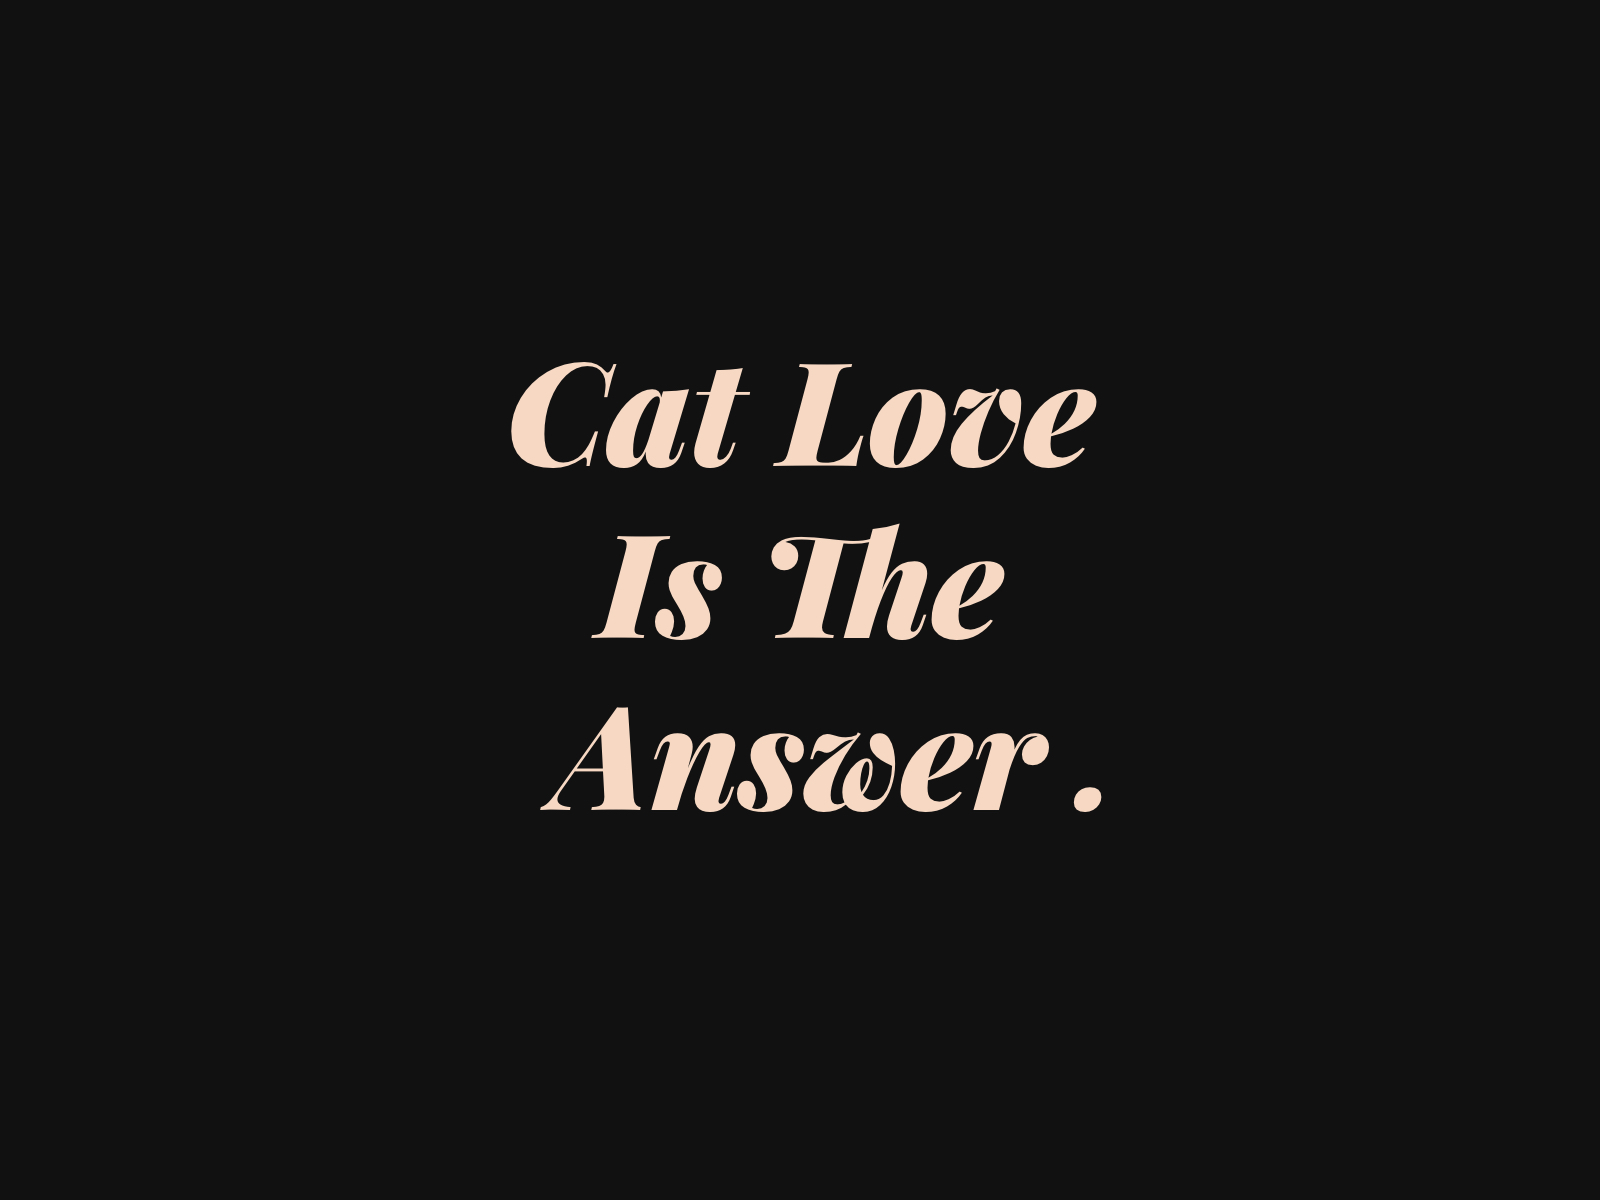 Cat Love Is The Answer. Funny quote T-shirt